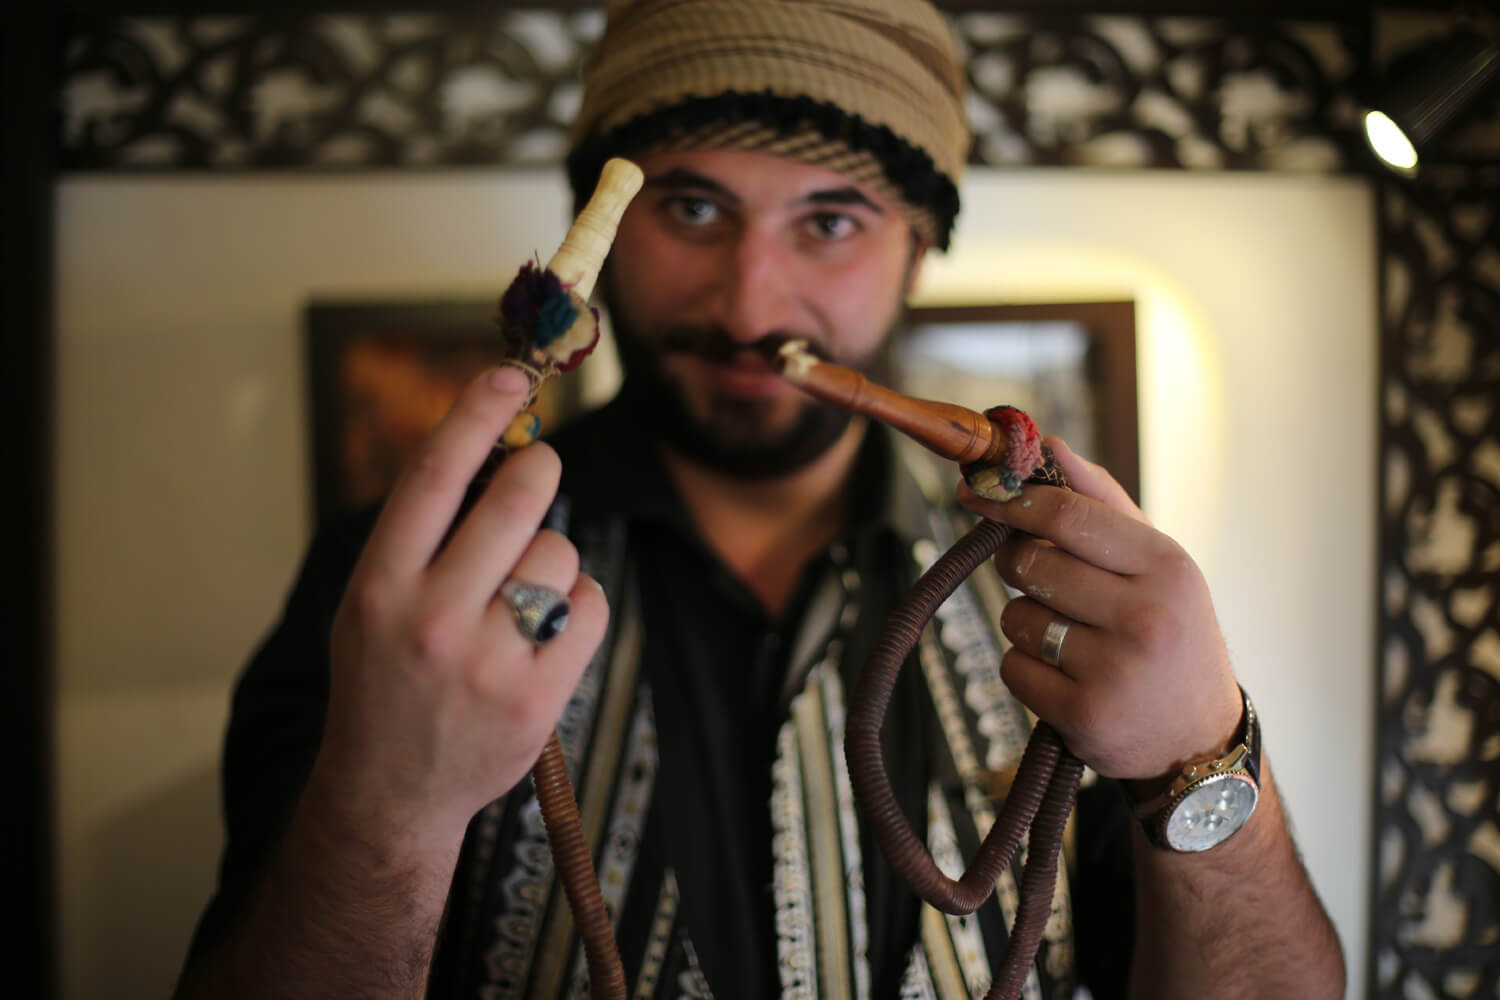 Qatarji holds a 150-year-old nargile hose made of ivory. (Photo: Mohammed Asad)